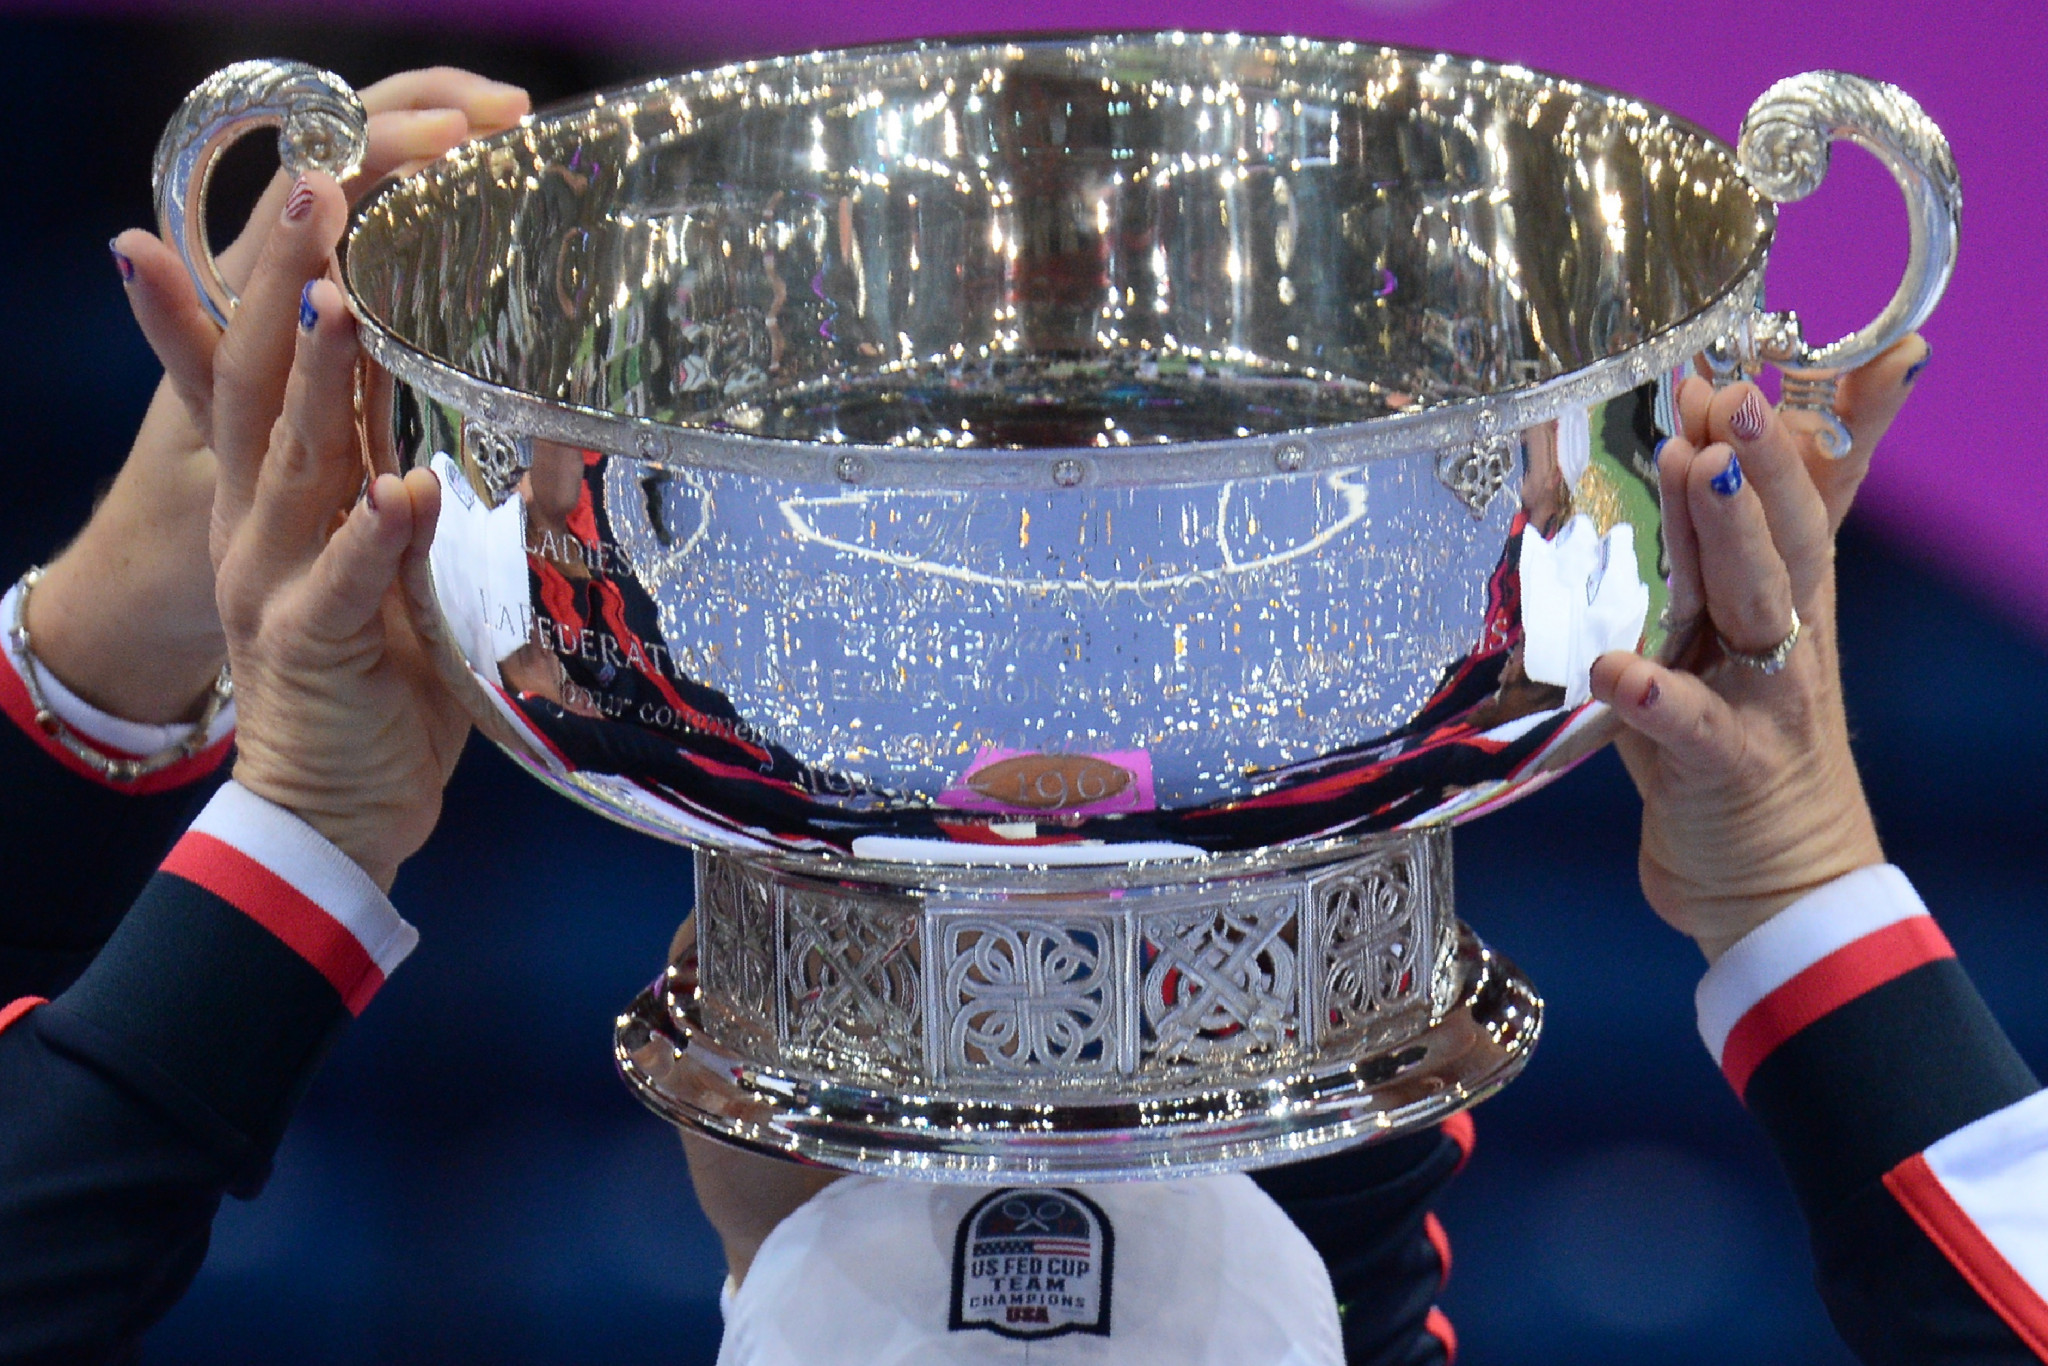 The Fed Cup is set to undergo similar changes to the Davis Cup ©Getty Images